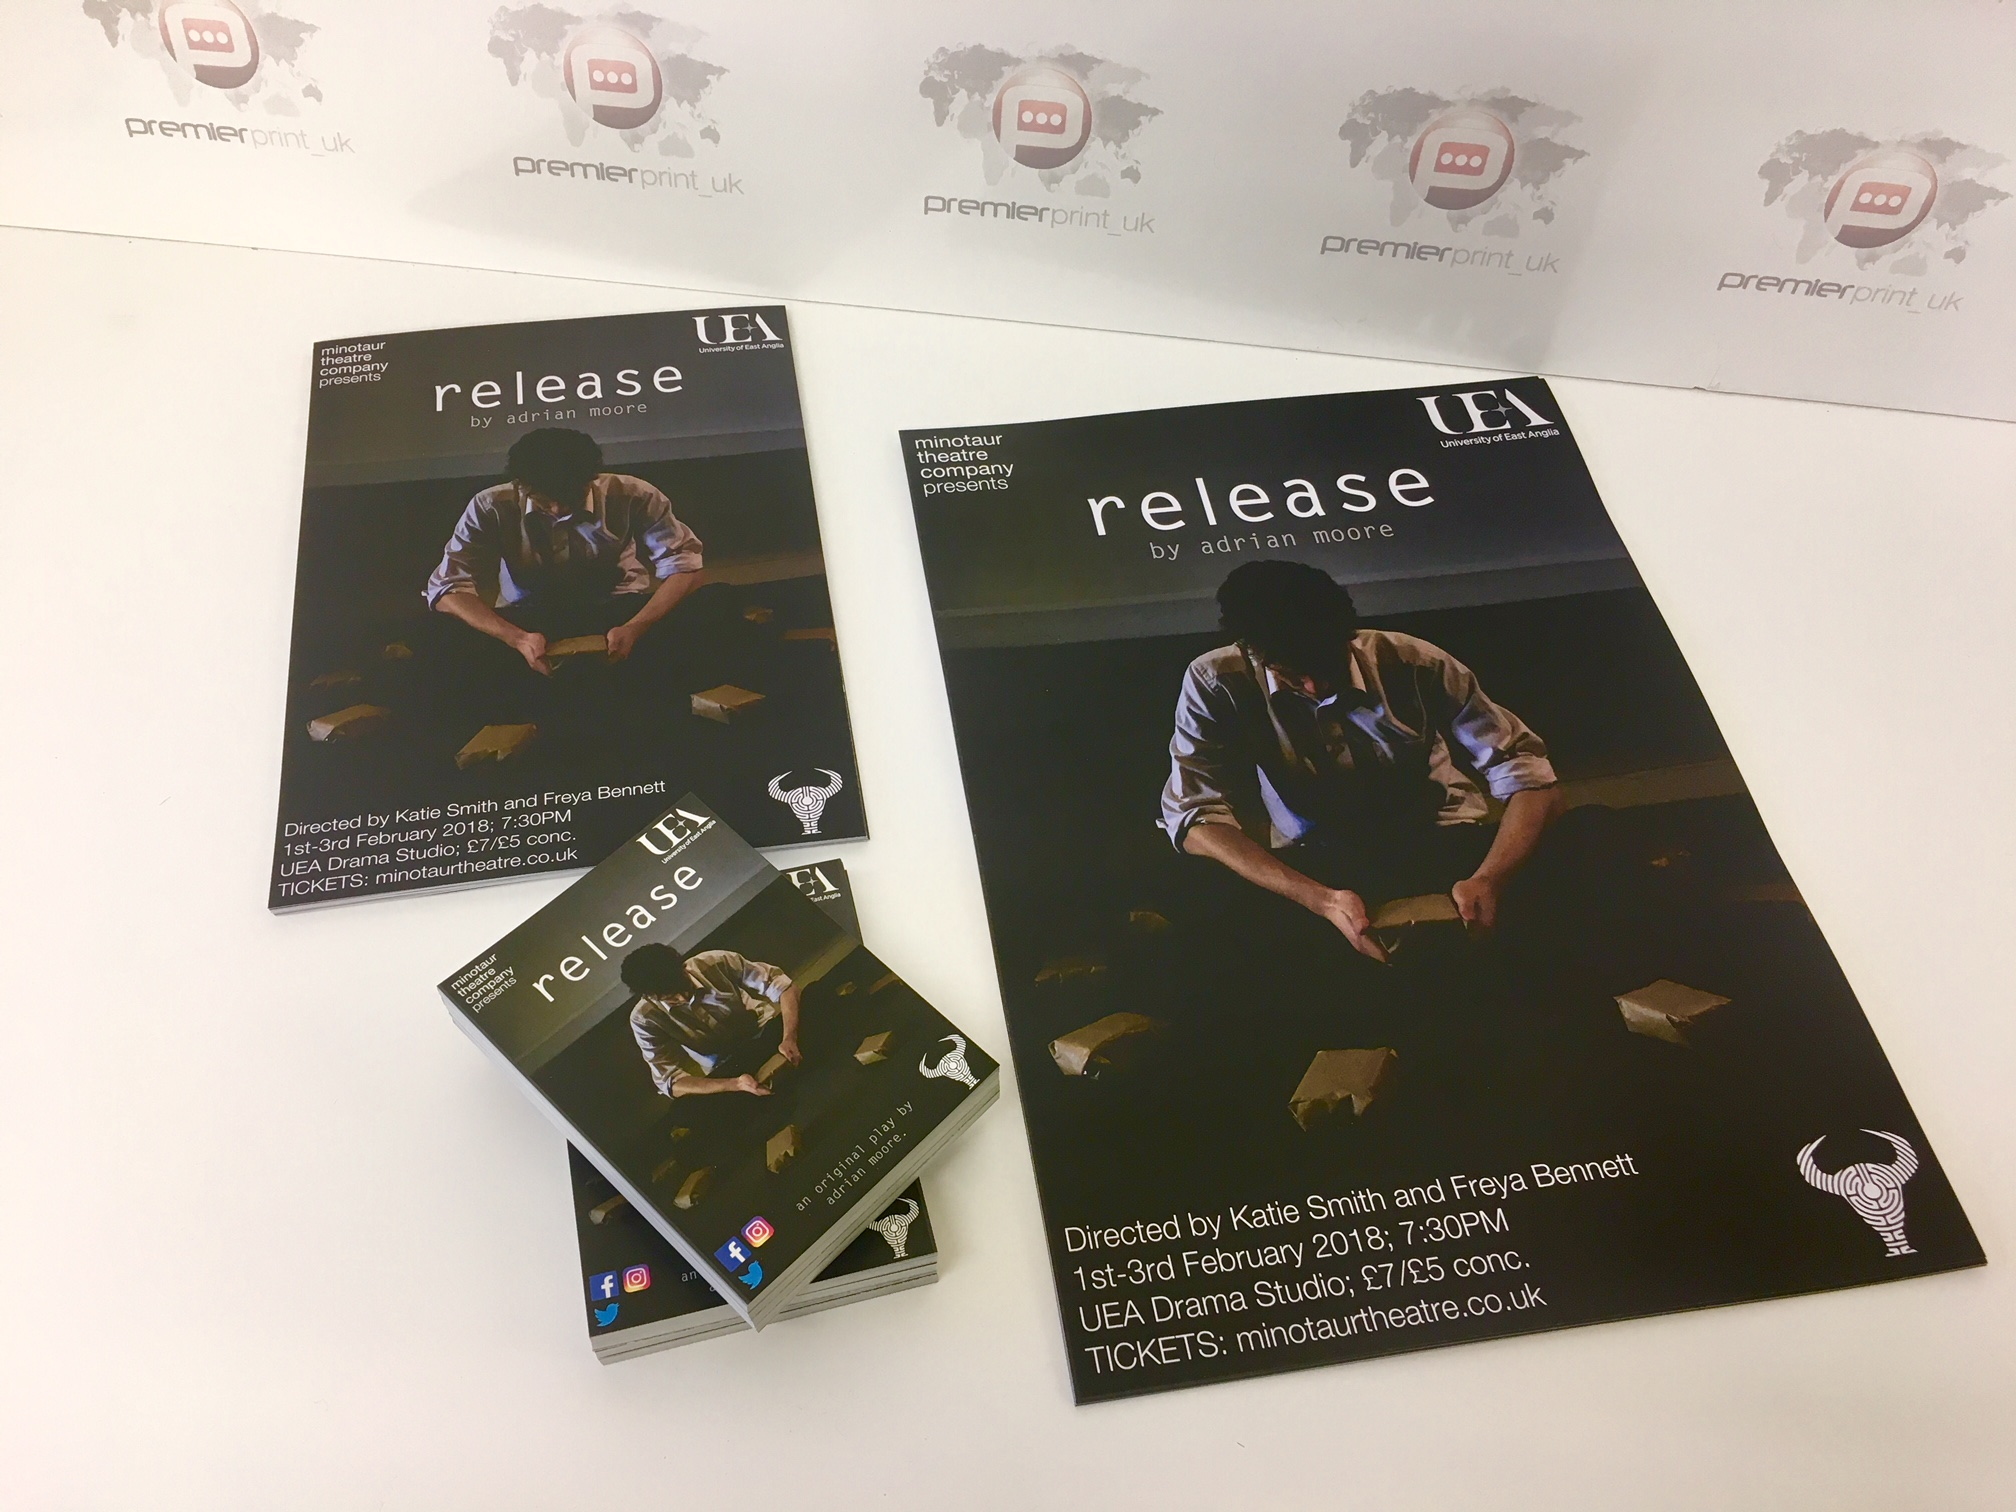 Flyer printed for the UEA